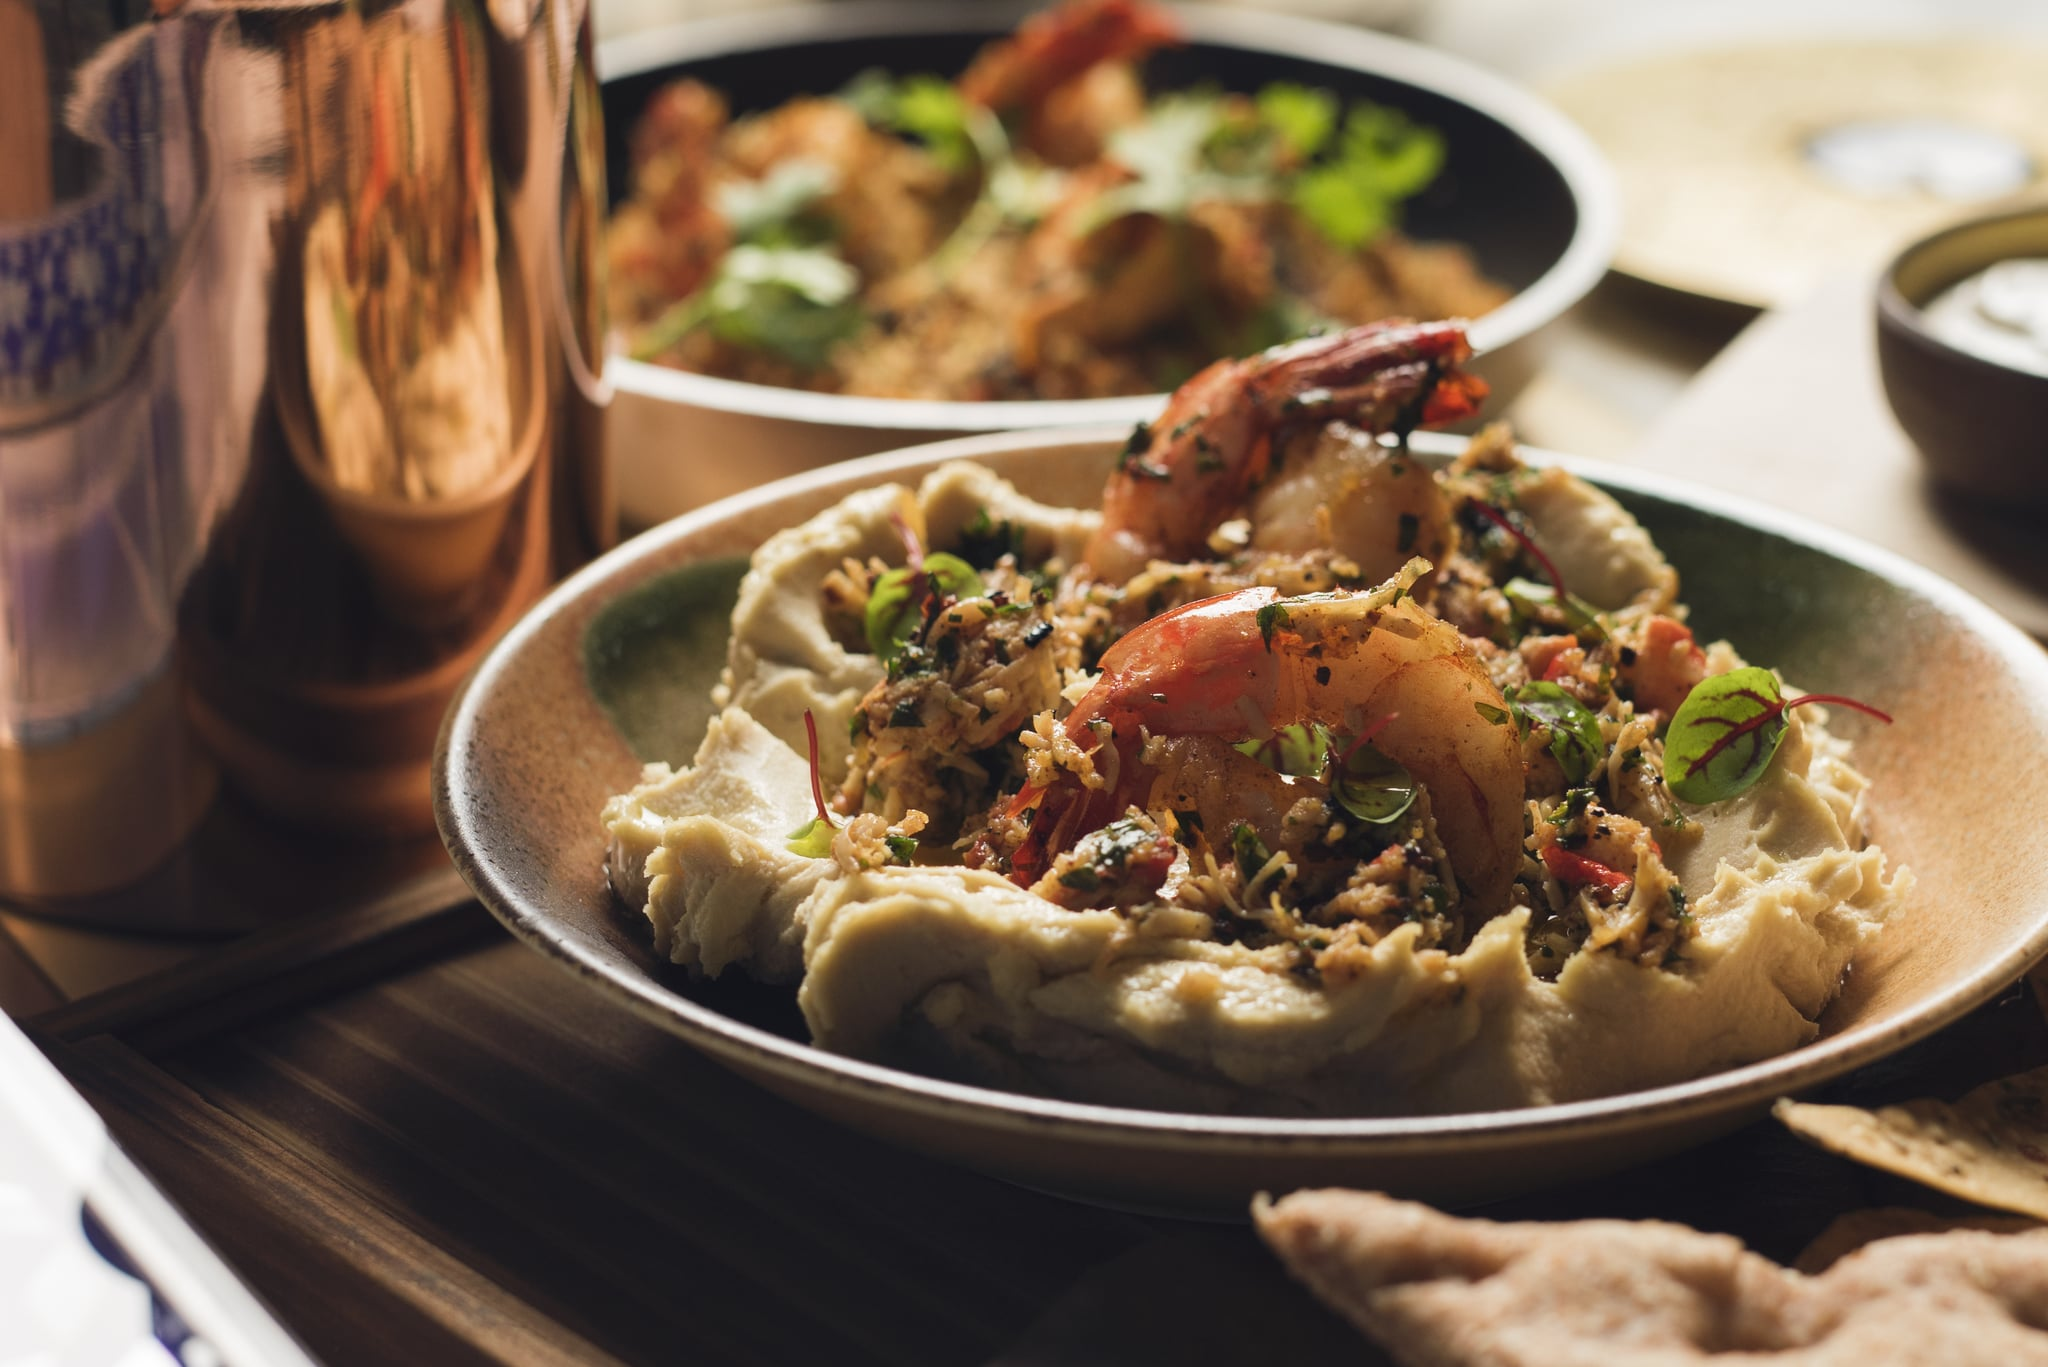 Play restaurant dubais hummus with cajun crustacean recipe play restaurant dubais hummus with cajun crustacean recipe popsugar middle east food forumfinder Image collections